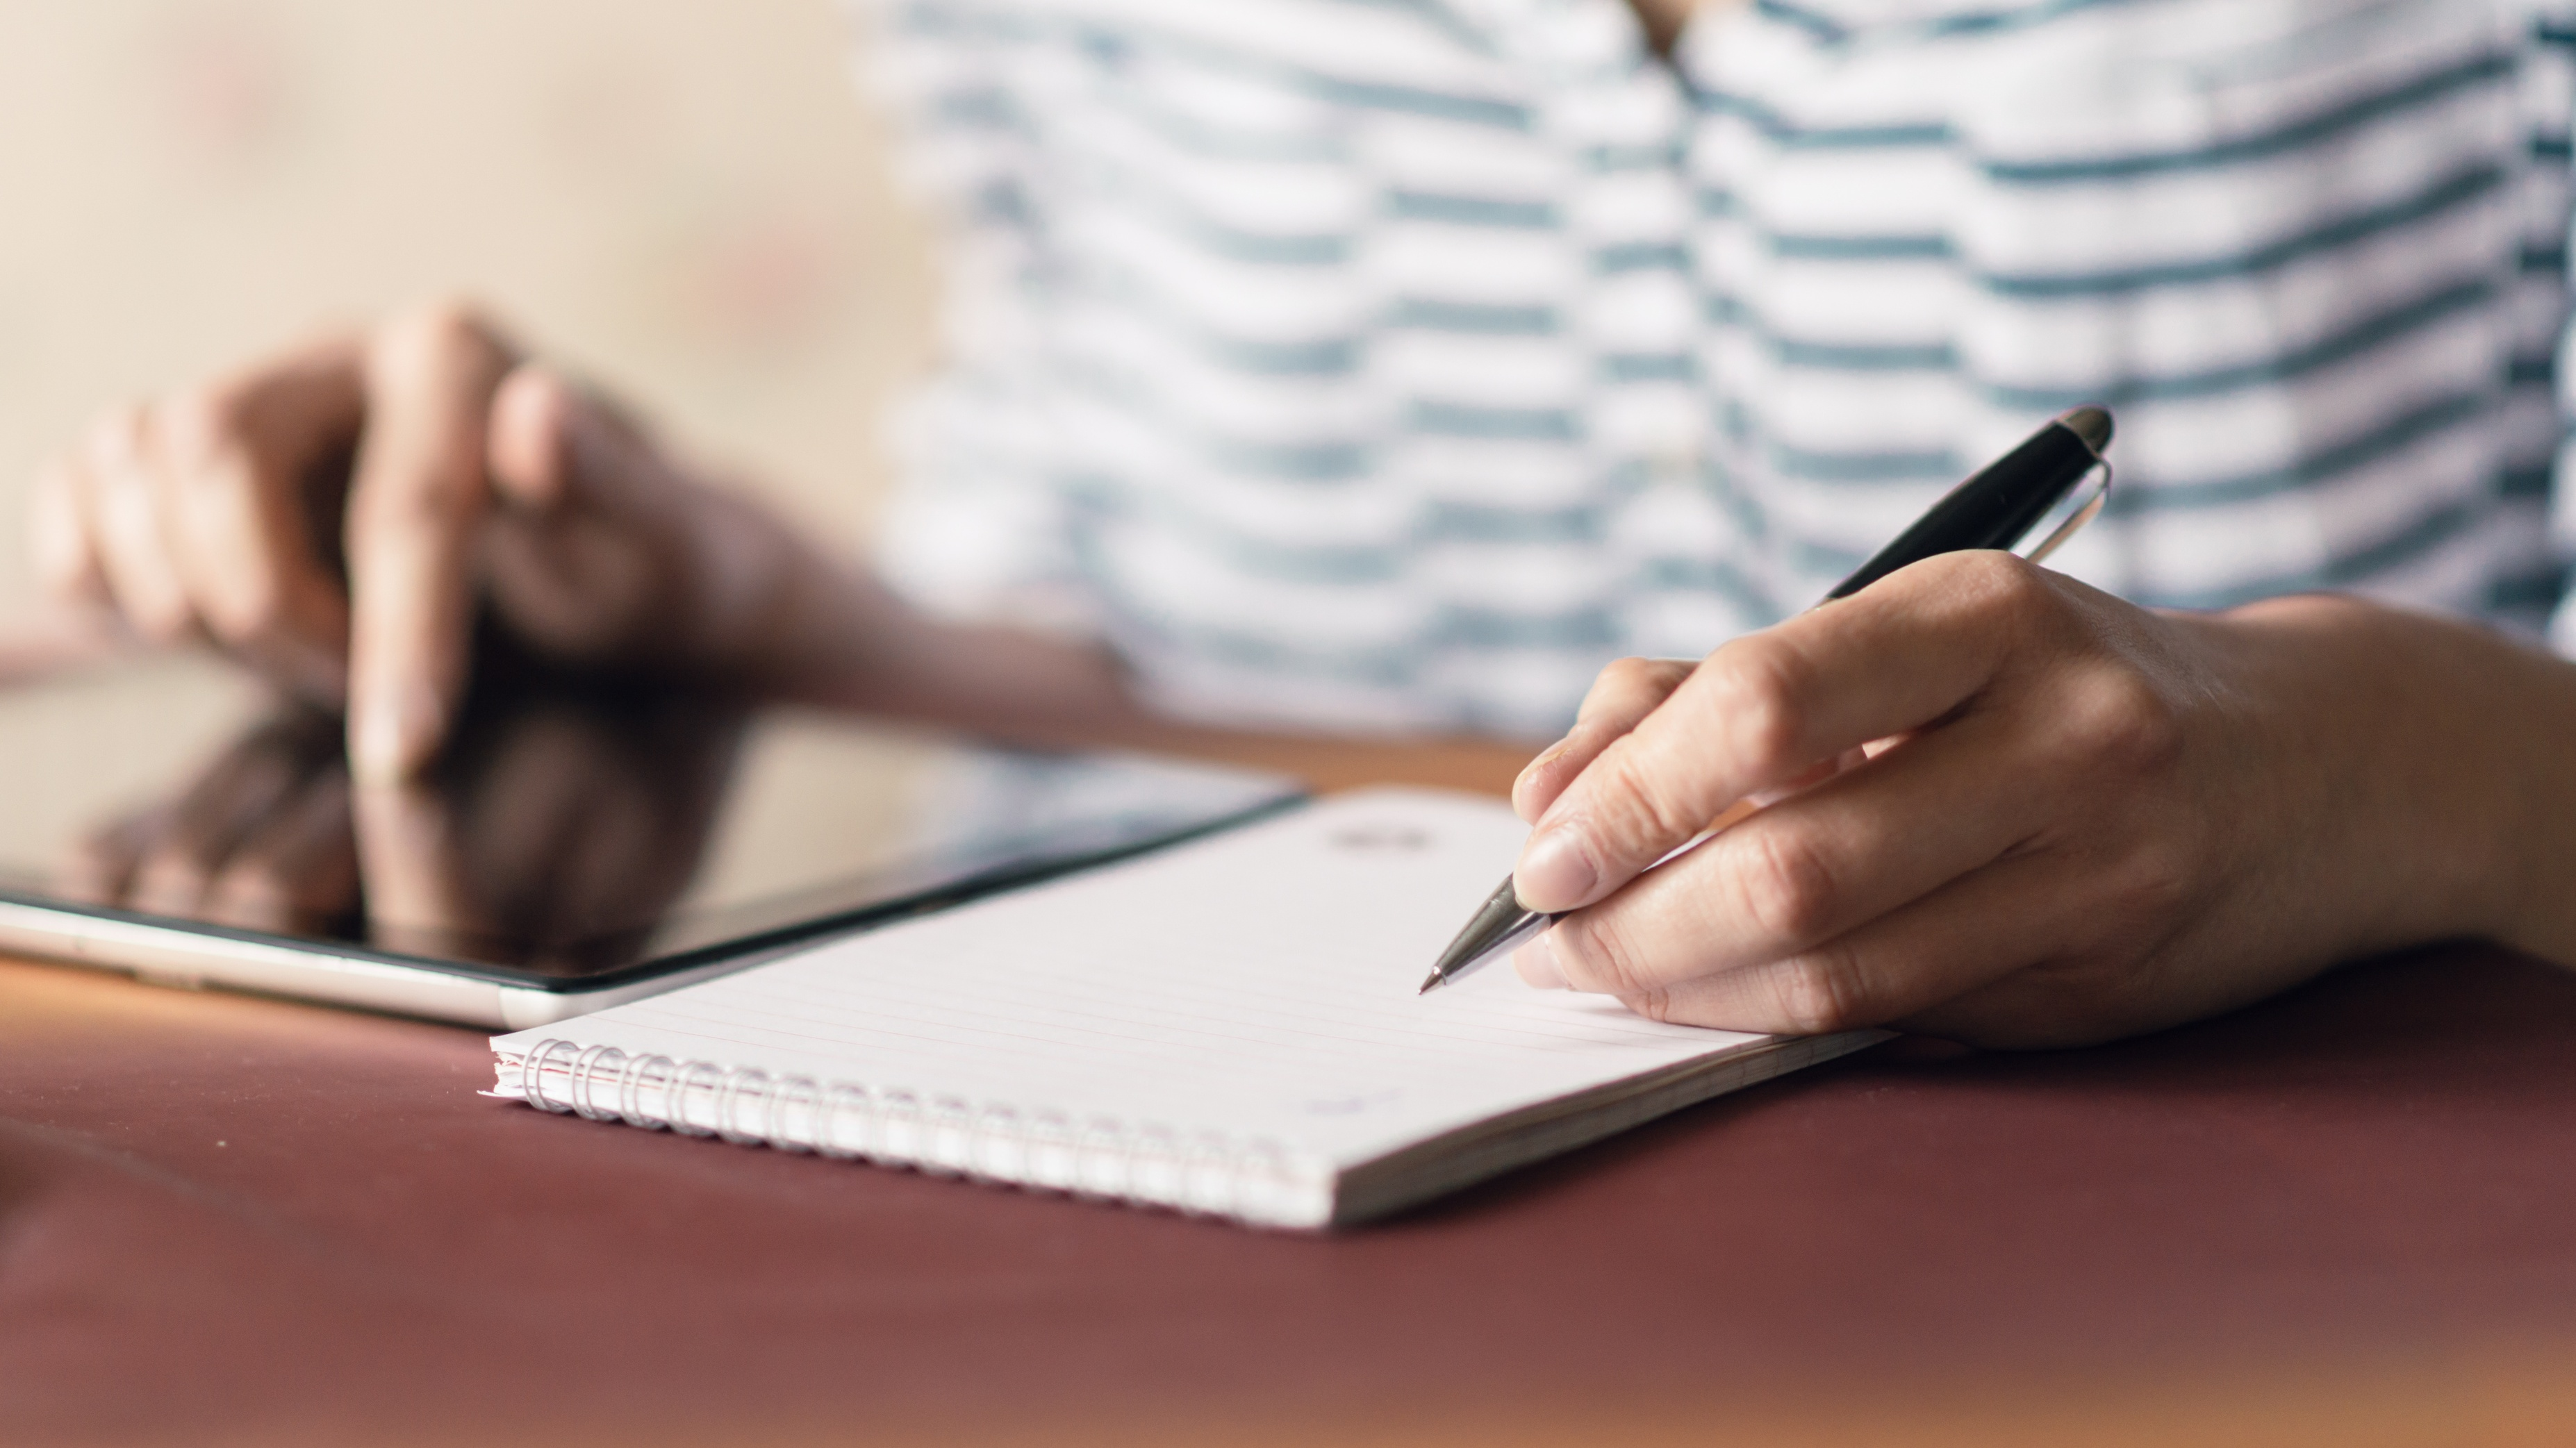 Generic photo of a woman writing a list in a notebook (ThinkStock/PA)